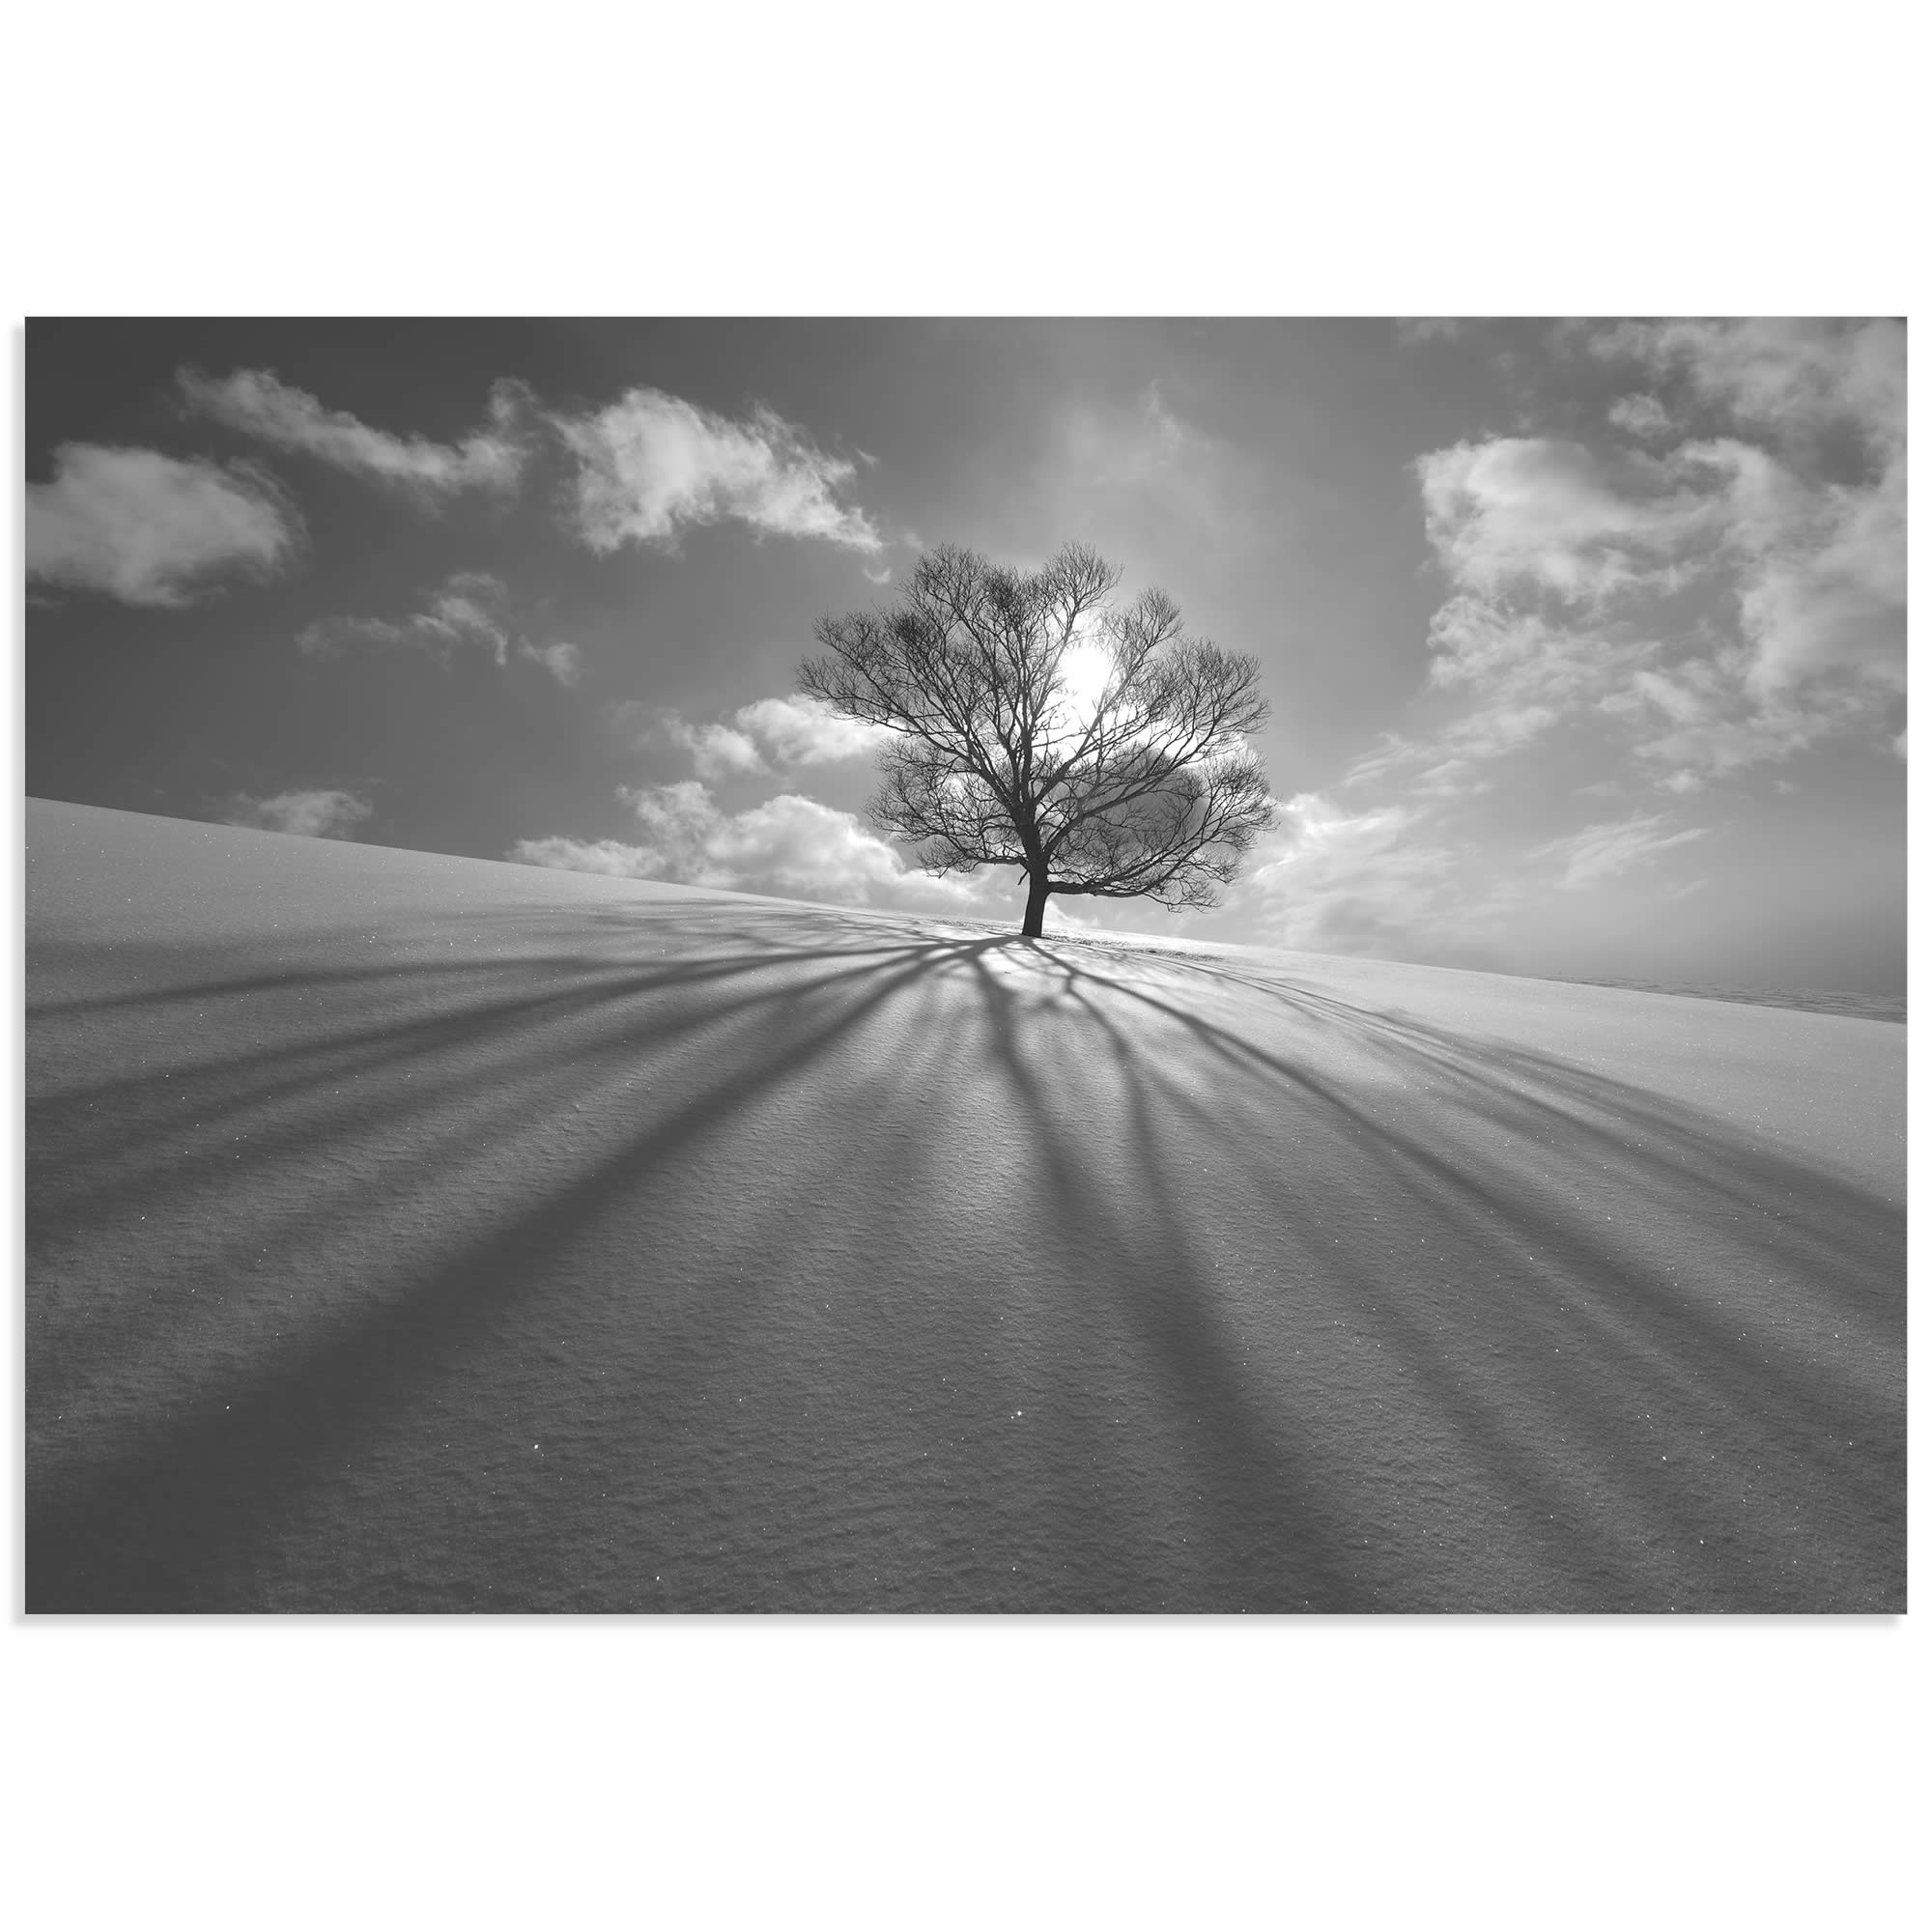 Tree Shadow by Kengo Shibutani - Dramatic Photography on Metal or Acrylic